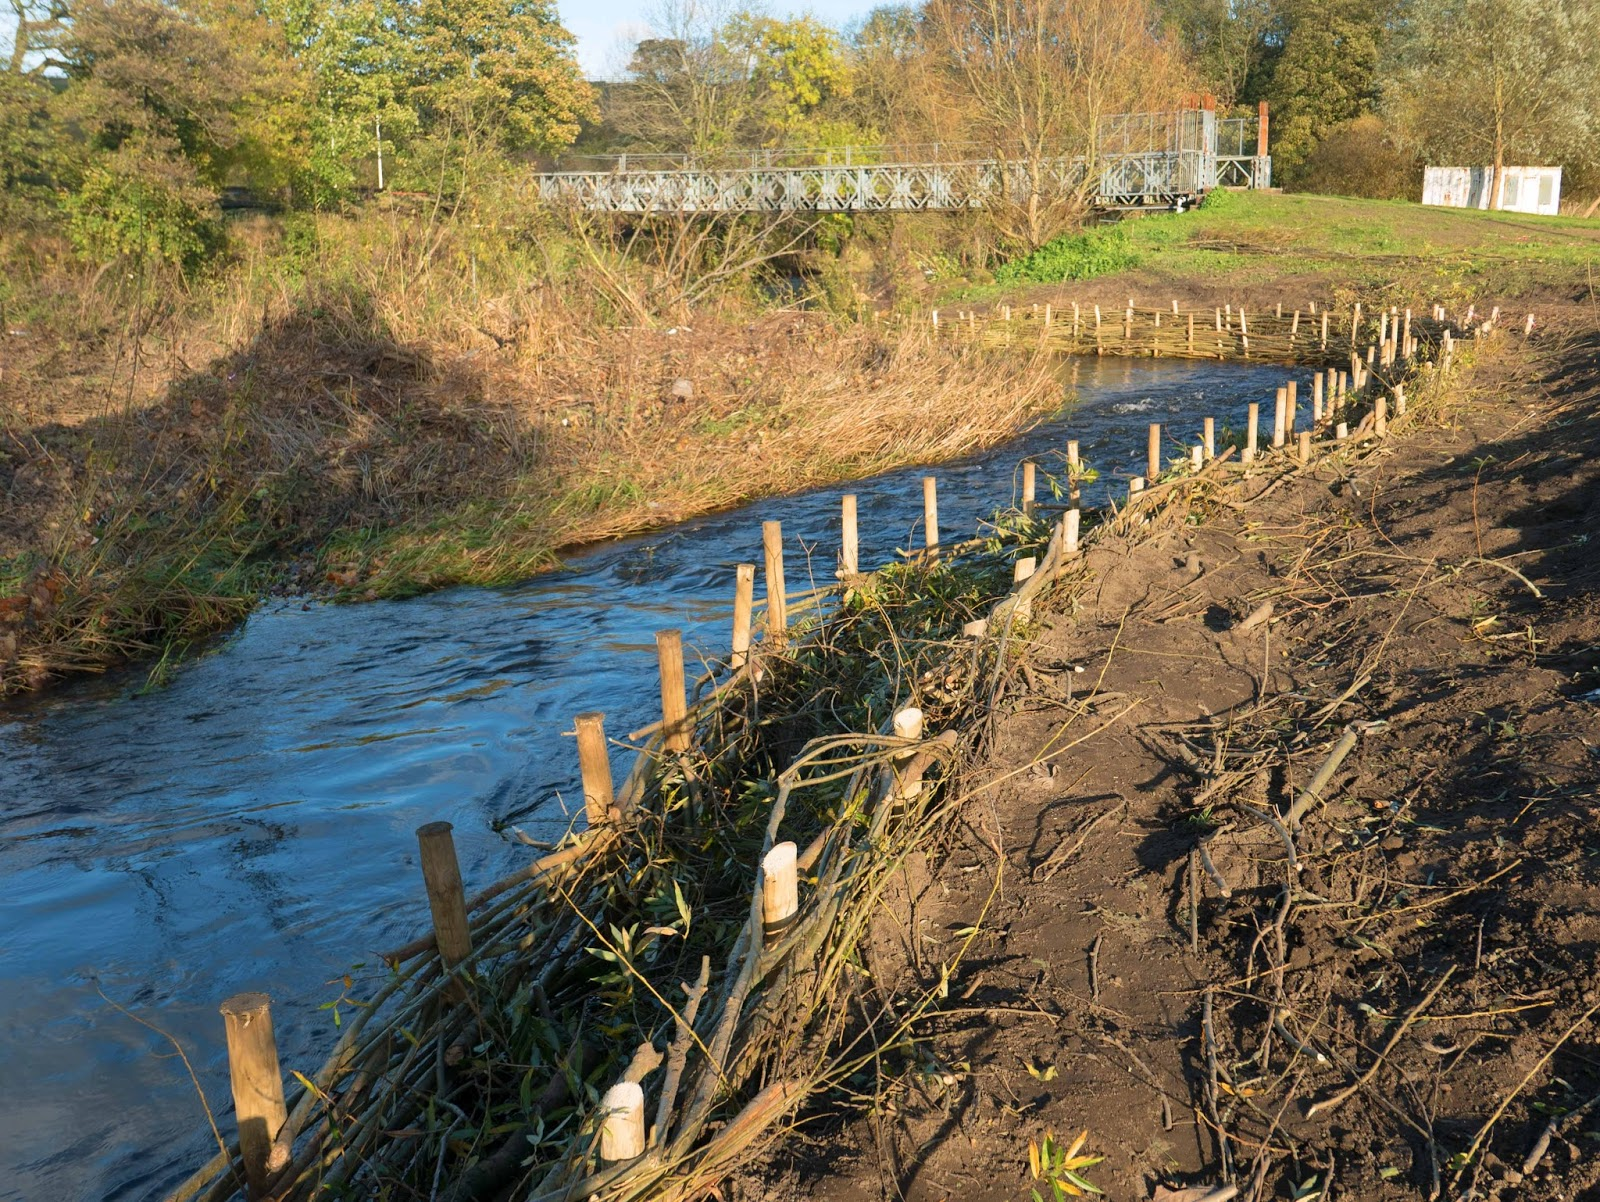 Spiling on the River Aire: 24th October 2017